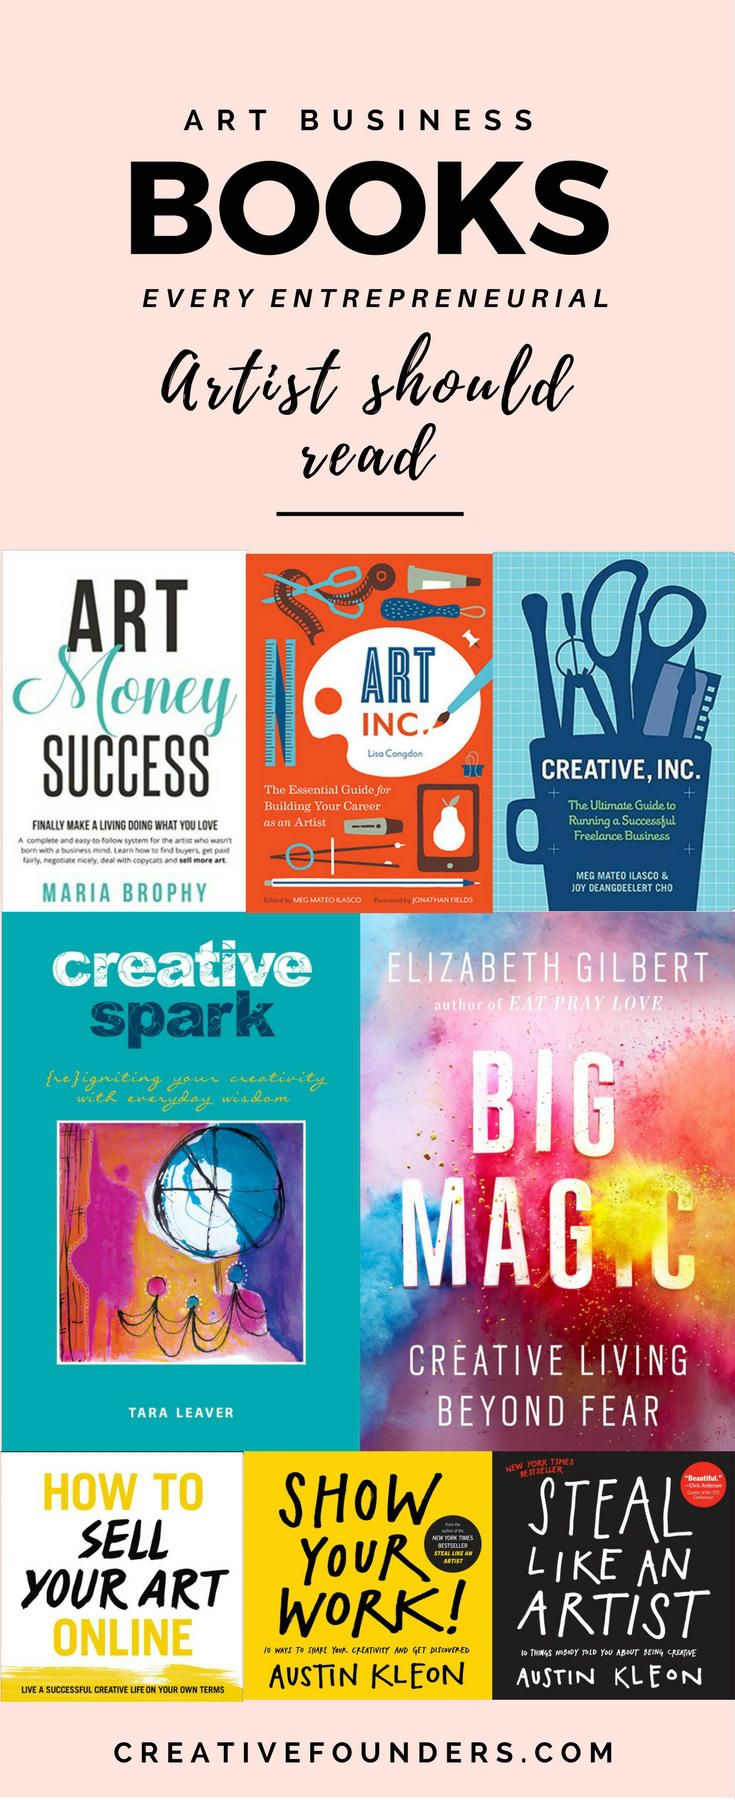 Art Business Books Every Entrepreneurial Artist Should Read // Art Money Success - Maria Brophy // Art Inc // Creative, Inc // Creative Spark - Tara Leaver // Big Magic // How to Sell Your Art Online - Cory Huff // Show Your Work // Steal Like An Artist // Sell Art // Sell Art Online // Artist Website